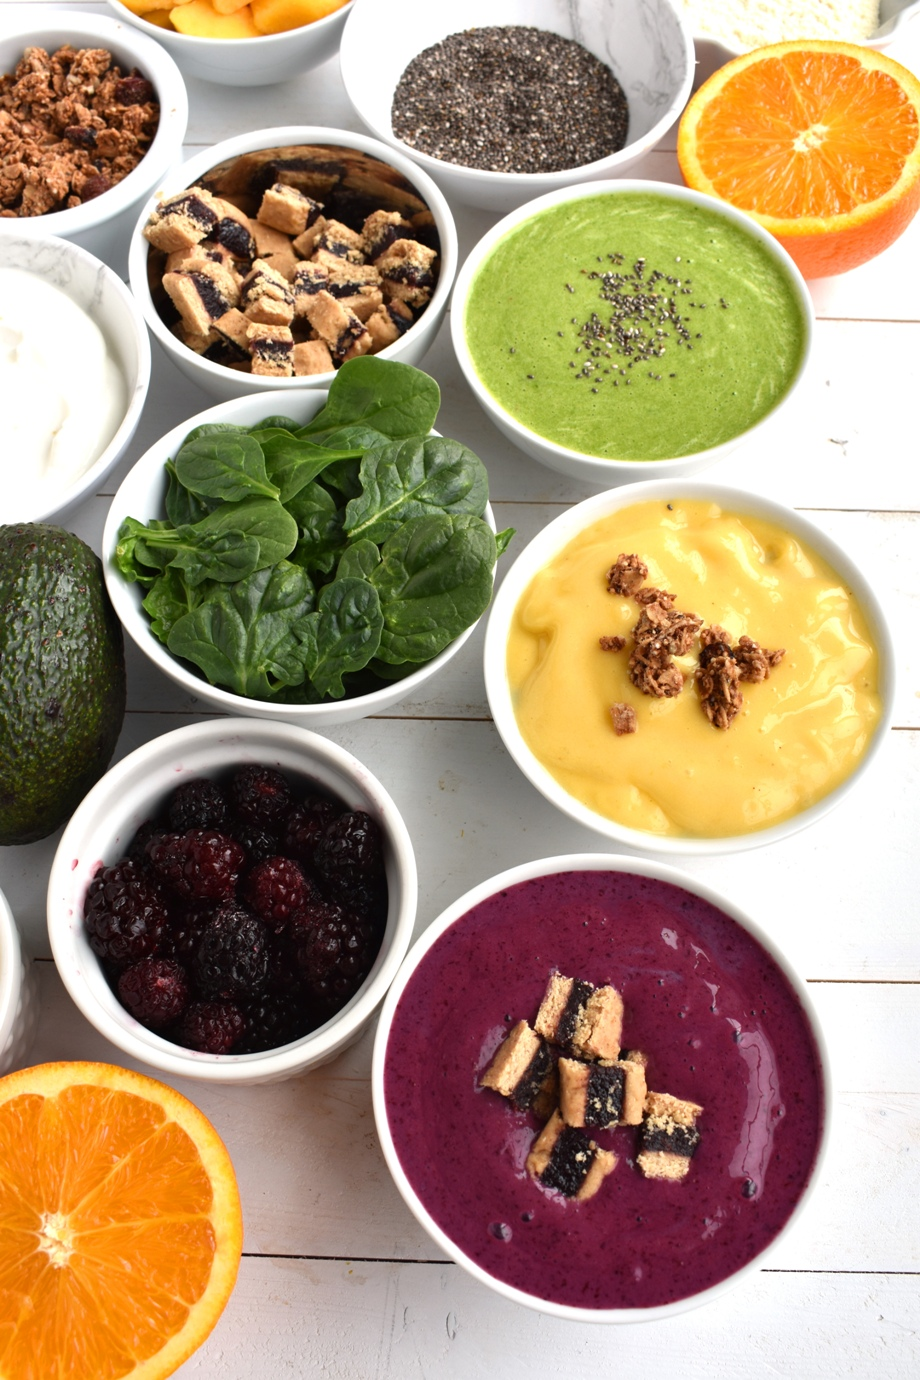 Build-Your-Own Smoothie Bowl Bar